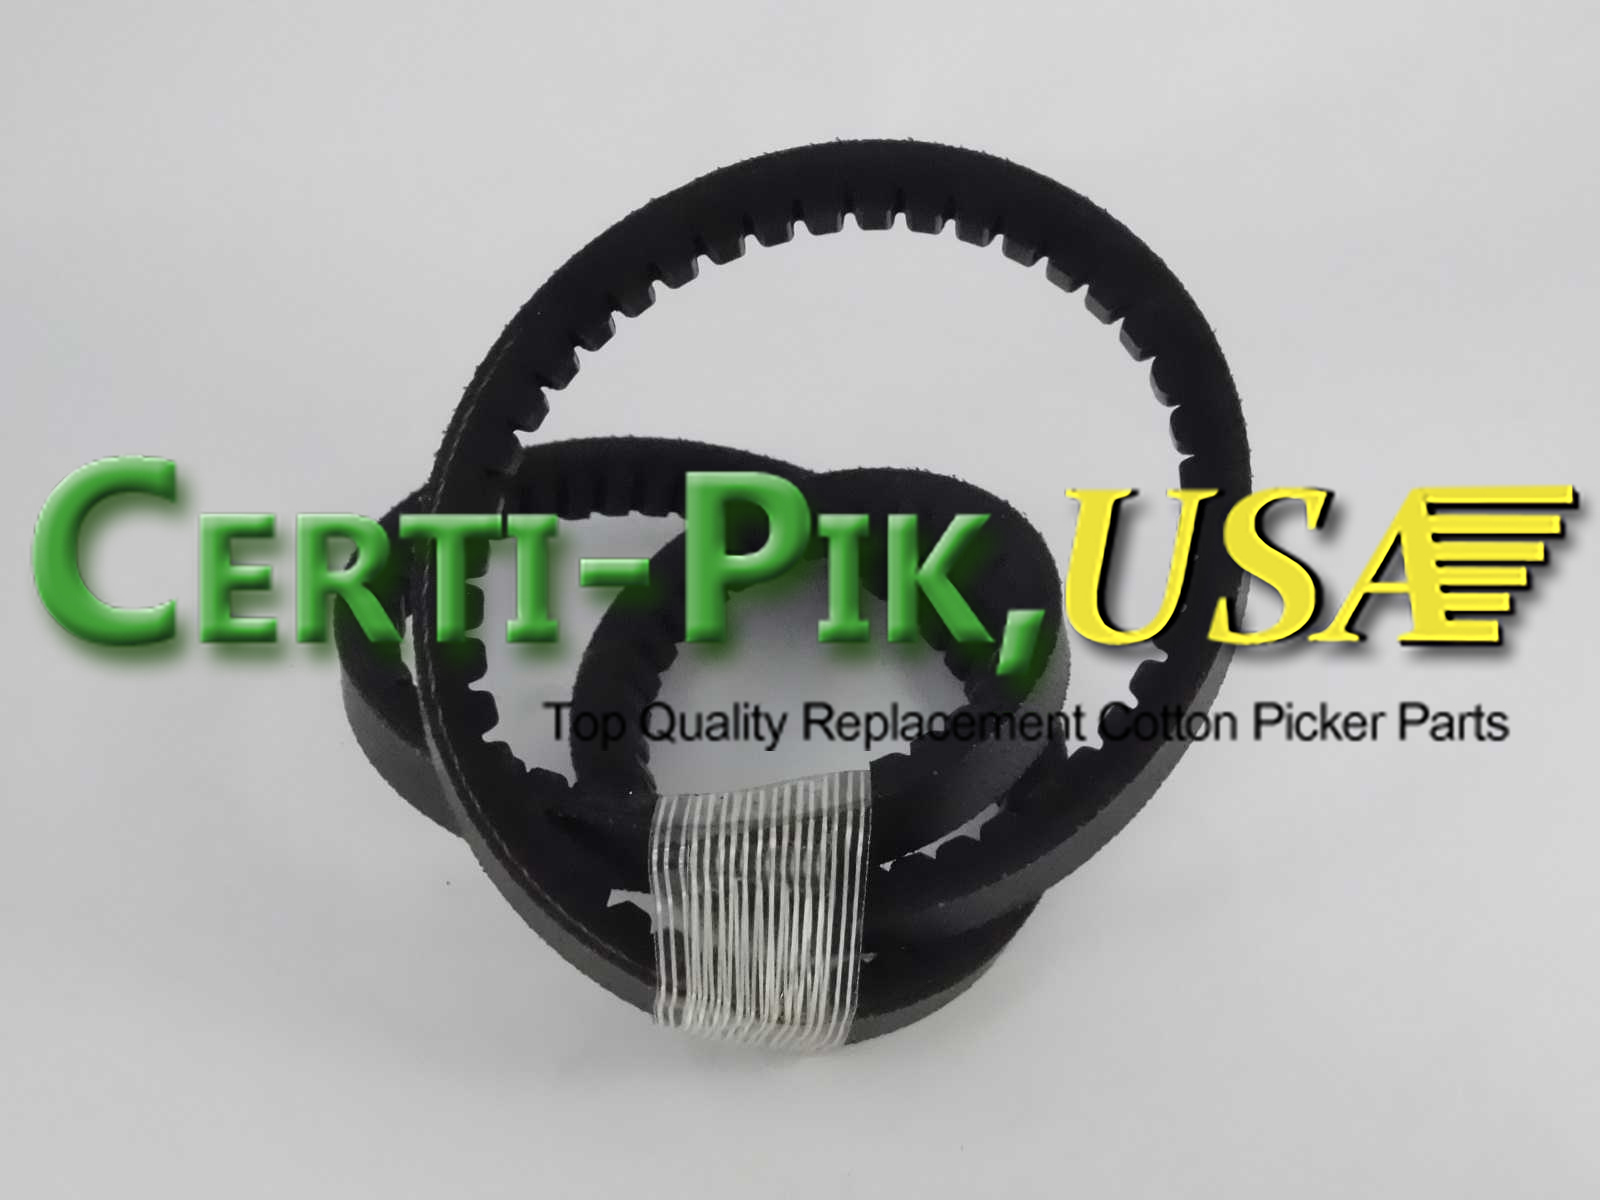 Belts: John Deere Replacement Belts - 9900 Thru CP690 M1900T (B1900T) for Sale